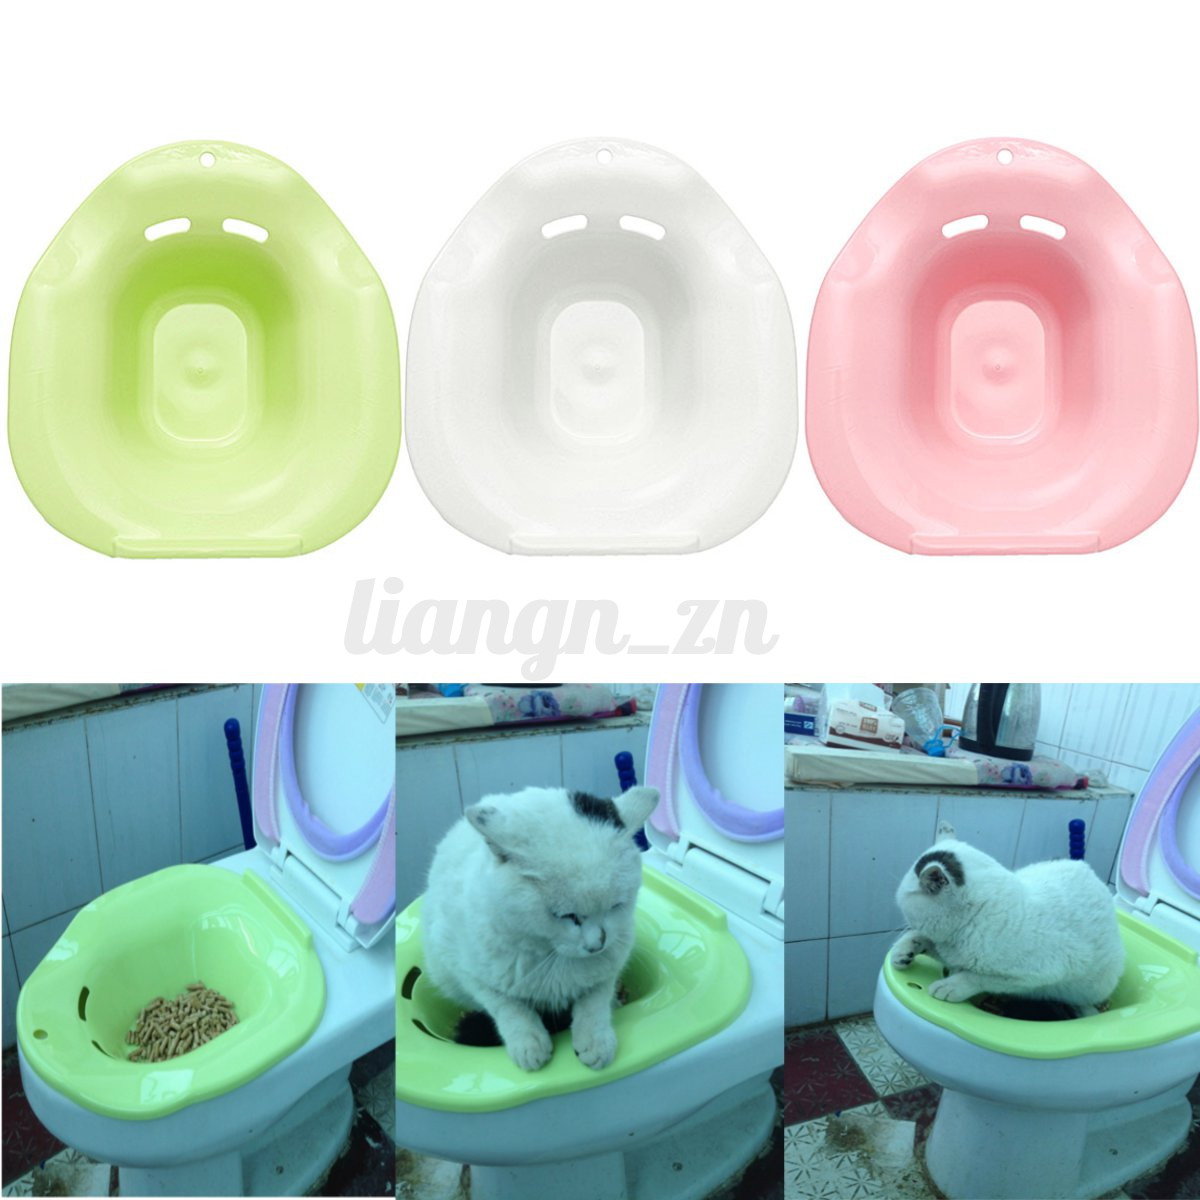 bac liti re pour chat chaton maison de toilette wc tamis de nettoyage filtre ebay. Black Bedroom Furniture Sets. Home Design Ideas